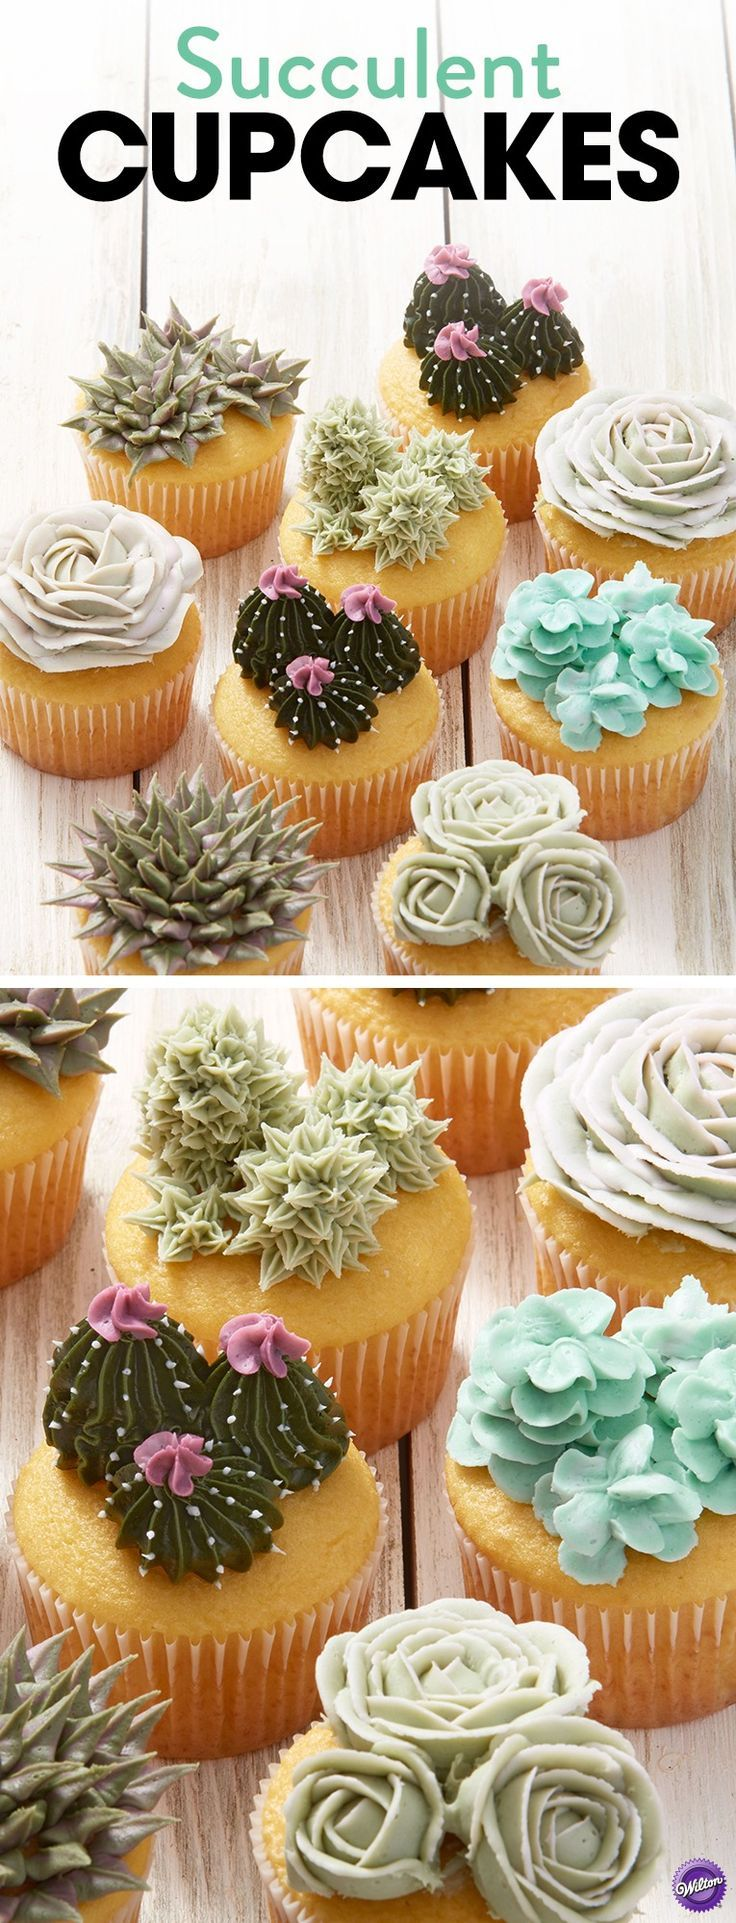 Learn how to make these beautiful succulent cupcakes that taste as good as they look! Get the full how-to at http://joann.com.